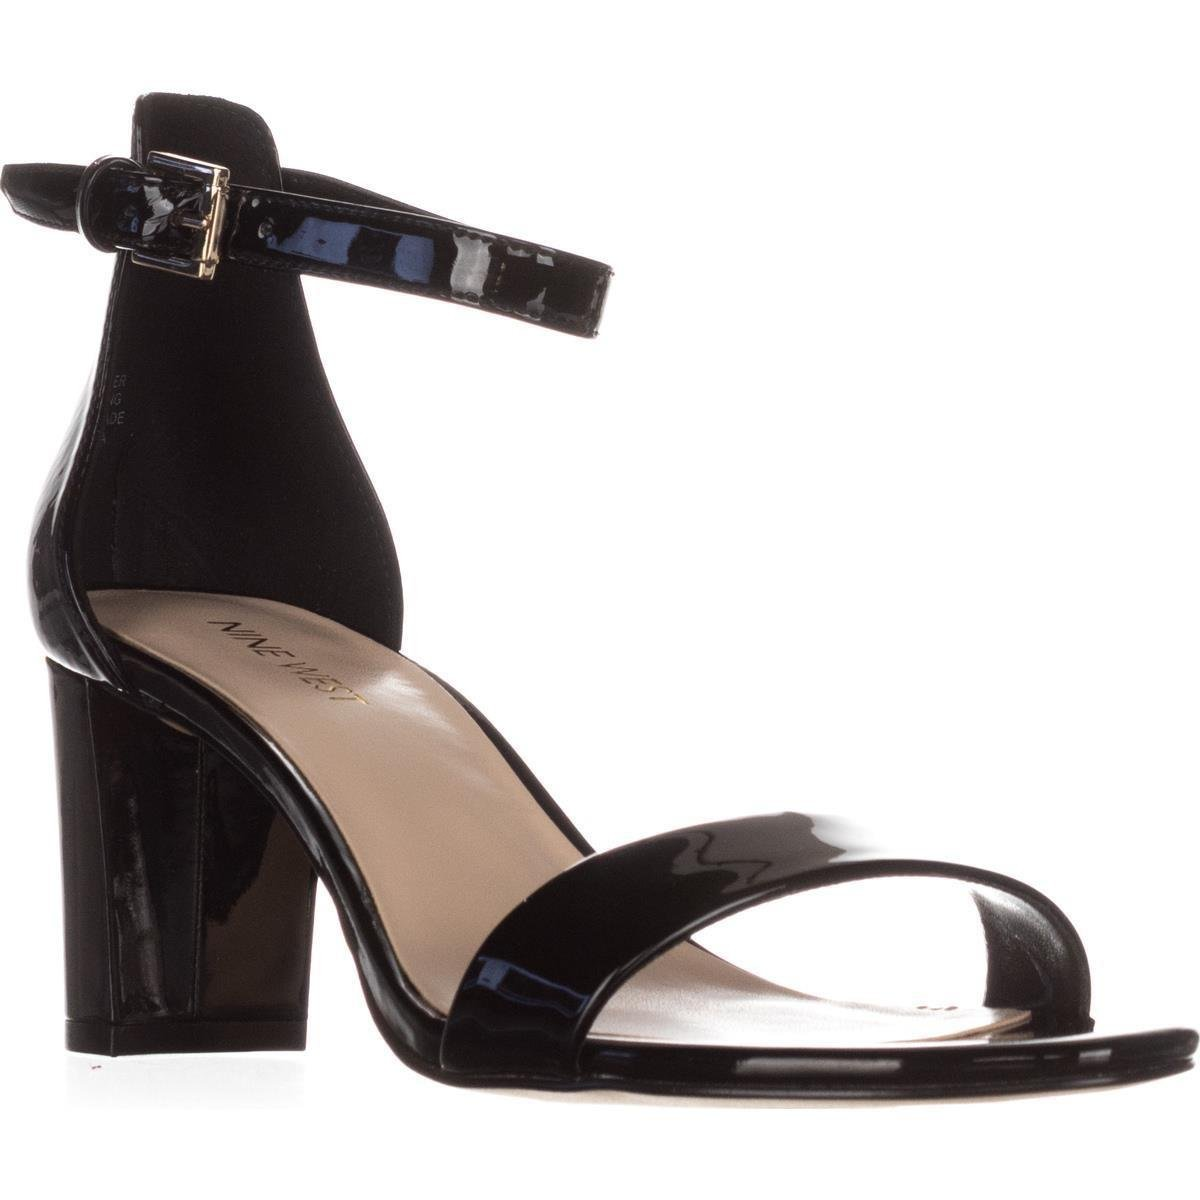 1d951d0400c Lyst - Nine West Pruce Ankle Strap Sandals in Black - Save 17%